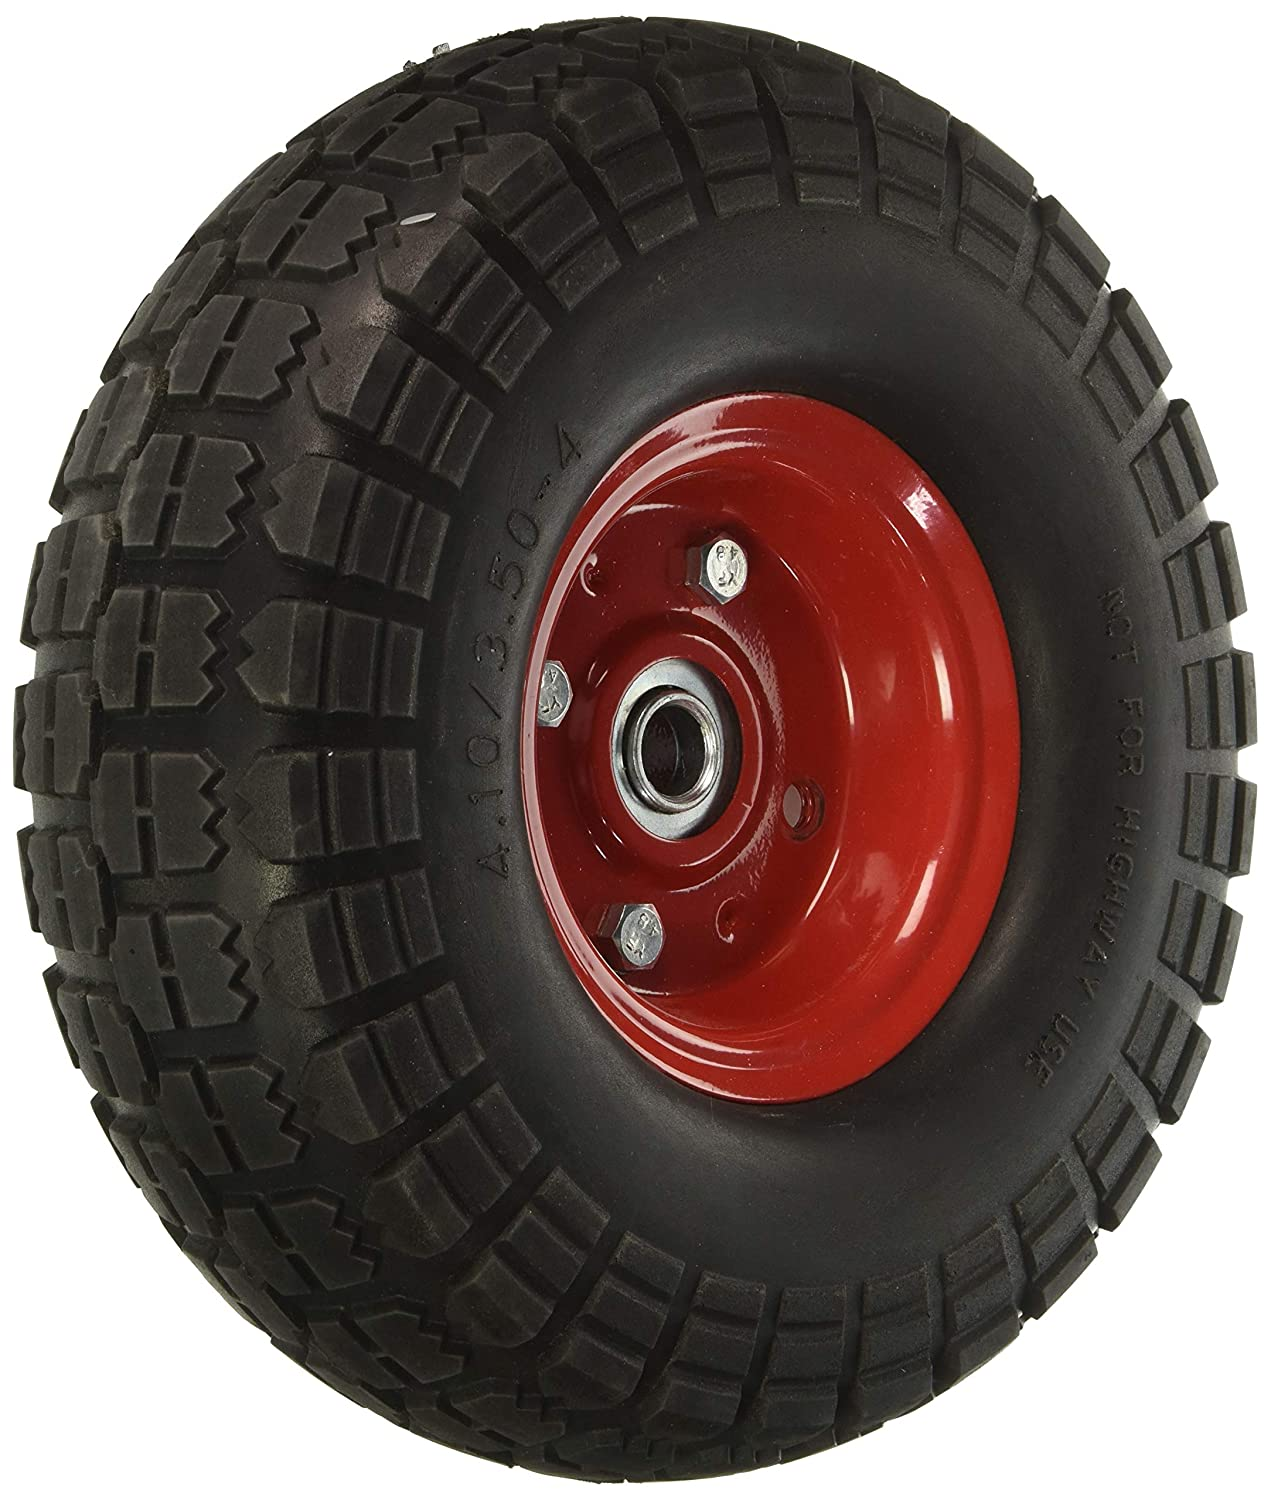 "10"" Flat Free Hand Truck Tire and Wheel with 5/8"" Center Shaft Hole 81EALxUigxL"